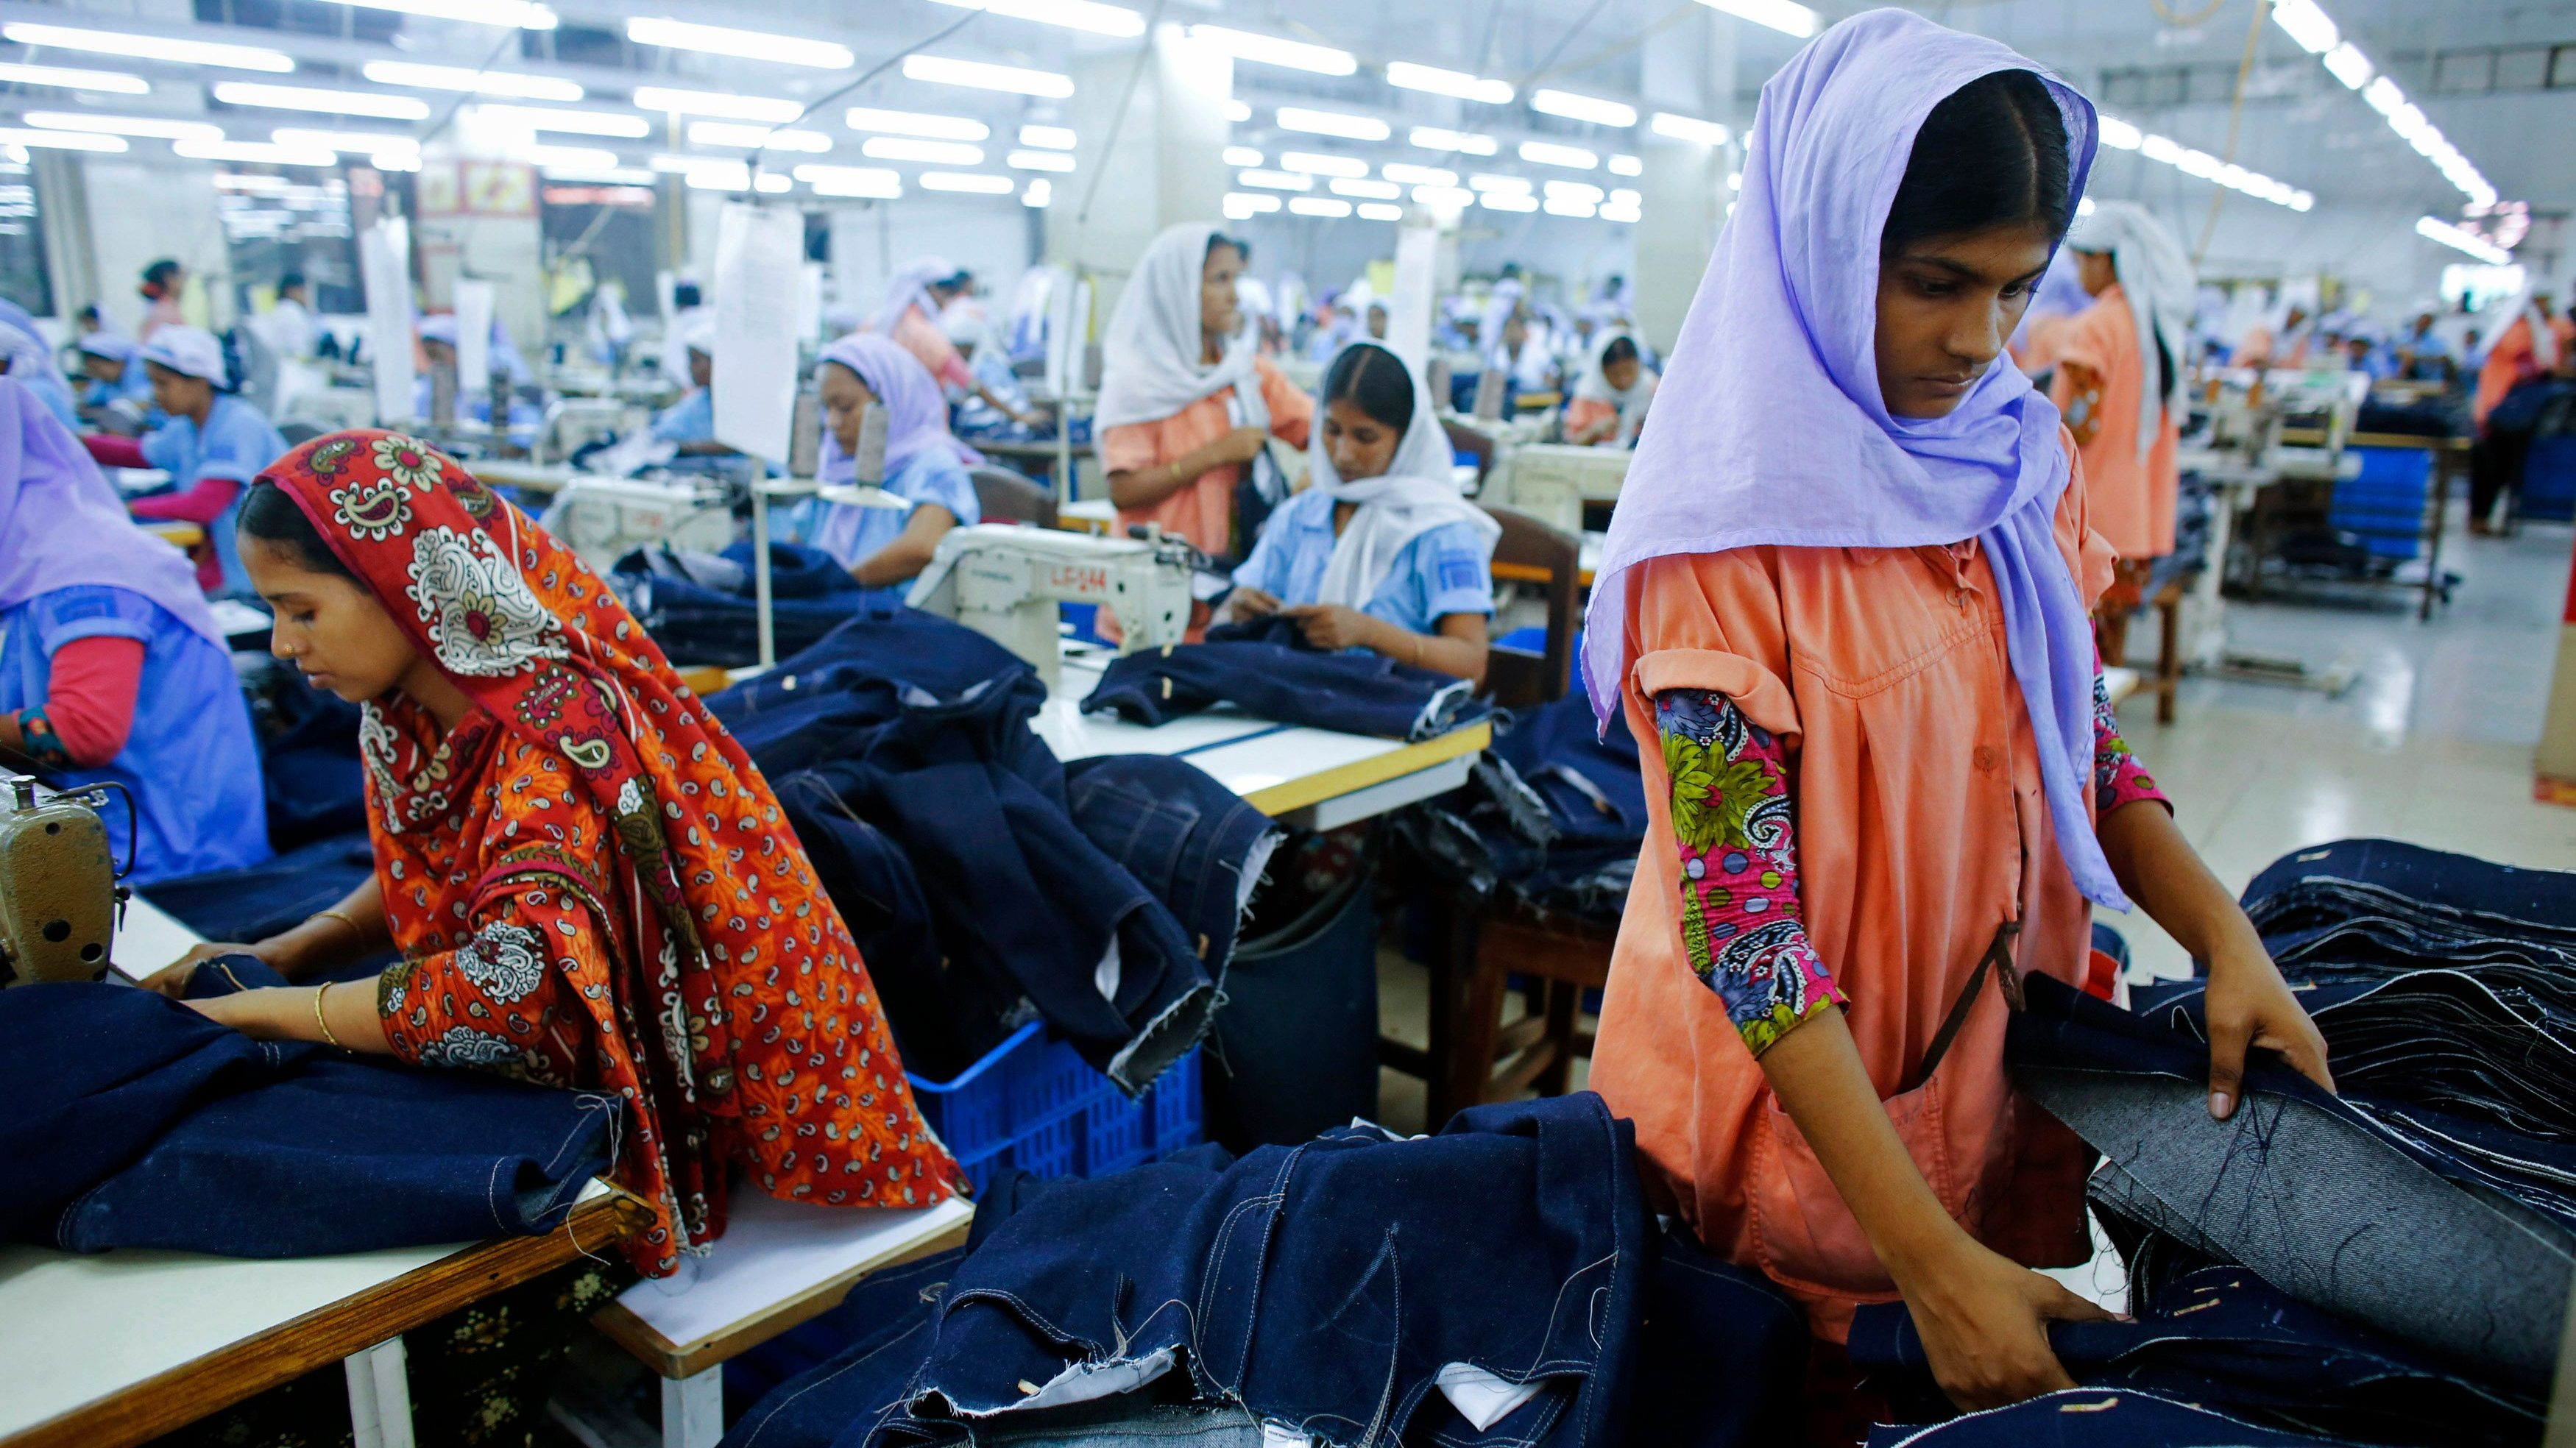 Workers sort clothes at a garment factory near the collapsed Rana Plaza building in Savar, Bangladesh June 16, 2013. The April 24 collapse of the Rana Plaza complex, built on swampy ground outside Dhaka with several illegal floors, killed 1,132 workers and focused international attention on sometimes lax safety standards in Bangladesh's booming garment industry. At least five different Bangladesh agencies have dispatched teams to start inspecting the country's thousands of garment factories, but there has been little coordination between them. More than four million people, mostly women, work in Bangladesh's clothing sector, which is the country's largest employment generator, with annual exports worth $21 billion. Picture taken June 16, 2013. REUTERS/Andrew Biraj  (BANGLADESH - Tags: BUSINESS INDUSTRIAL EMPLOYMENT SOCIETY)  ATTENTION EDITORS: PICTURE 01 OF 35 FOR PACKAGE 'INDUSTRY'S VICTIMS IN BANGLADESH'. TO FIND ALL IMAGES SEARCH 'INDUSTRY'S VICTIMS BIRAJ' - GM1E97R16OO01